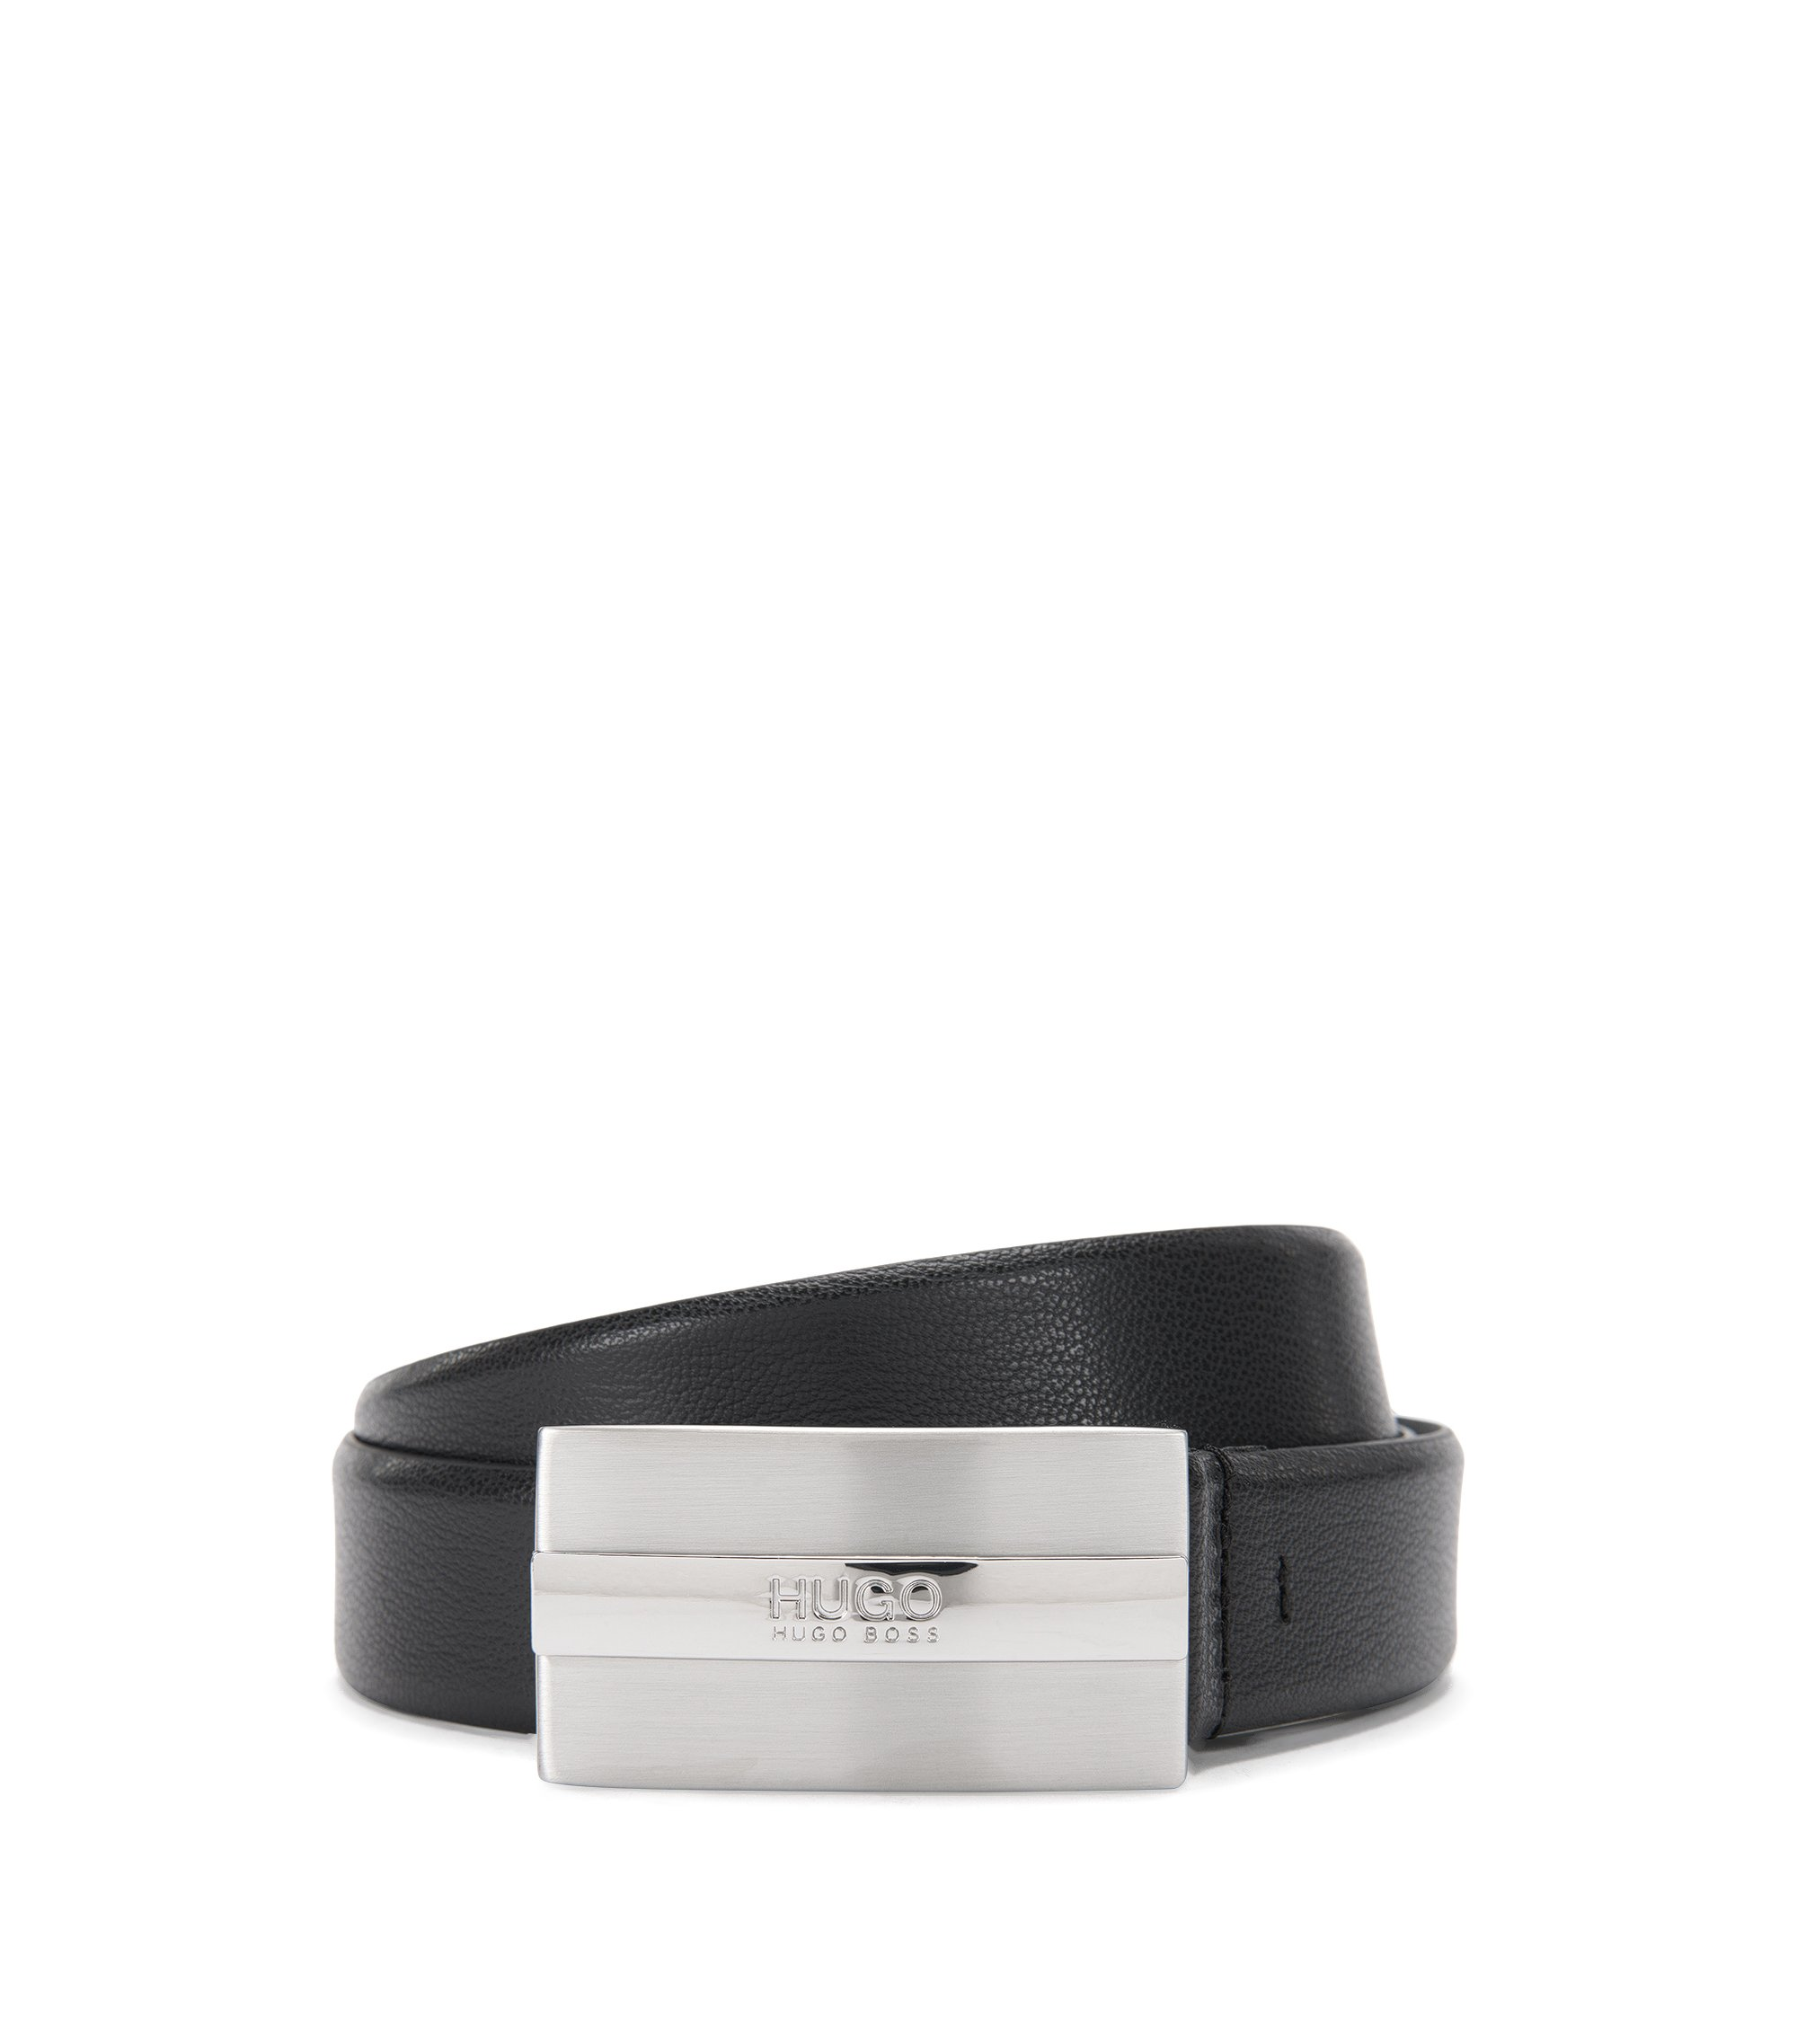 Leather belt with brushed-silver plaque buckle by HUGO Man, Black